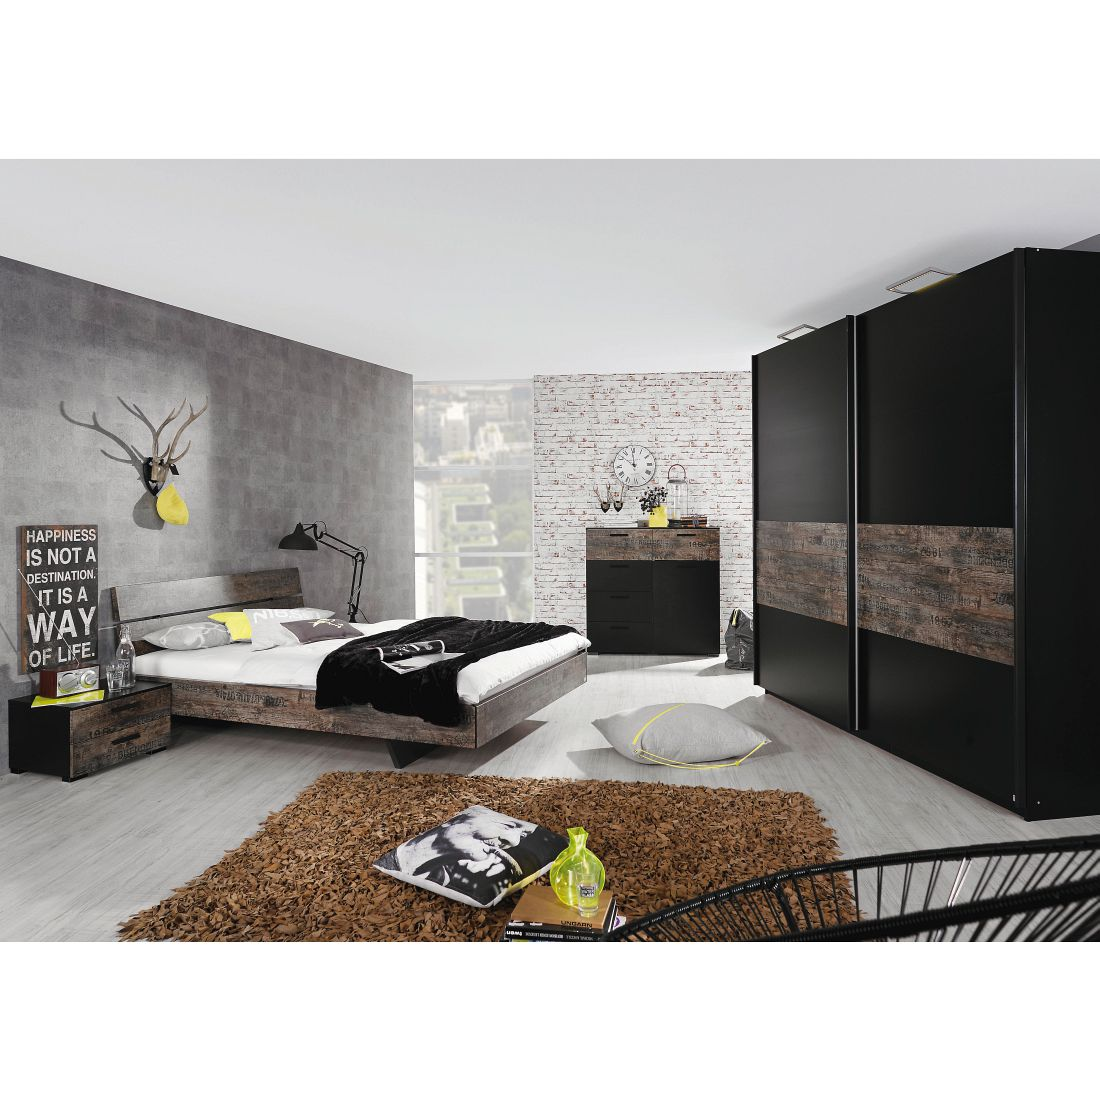 Ensemble complet Vintage Factory - Noir / Marron vintage - Surface de couchage du lit : 140 x 200 cm, Rauch Select